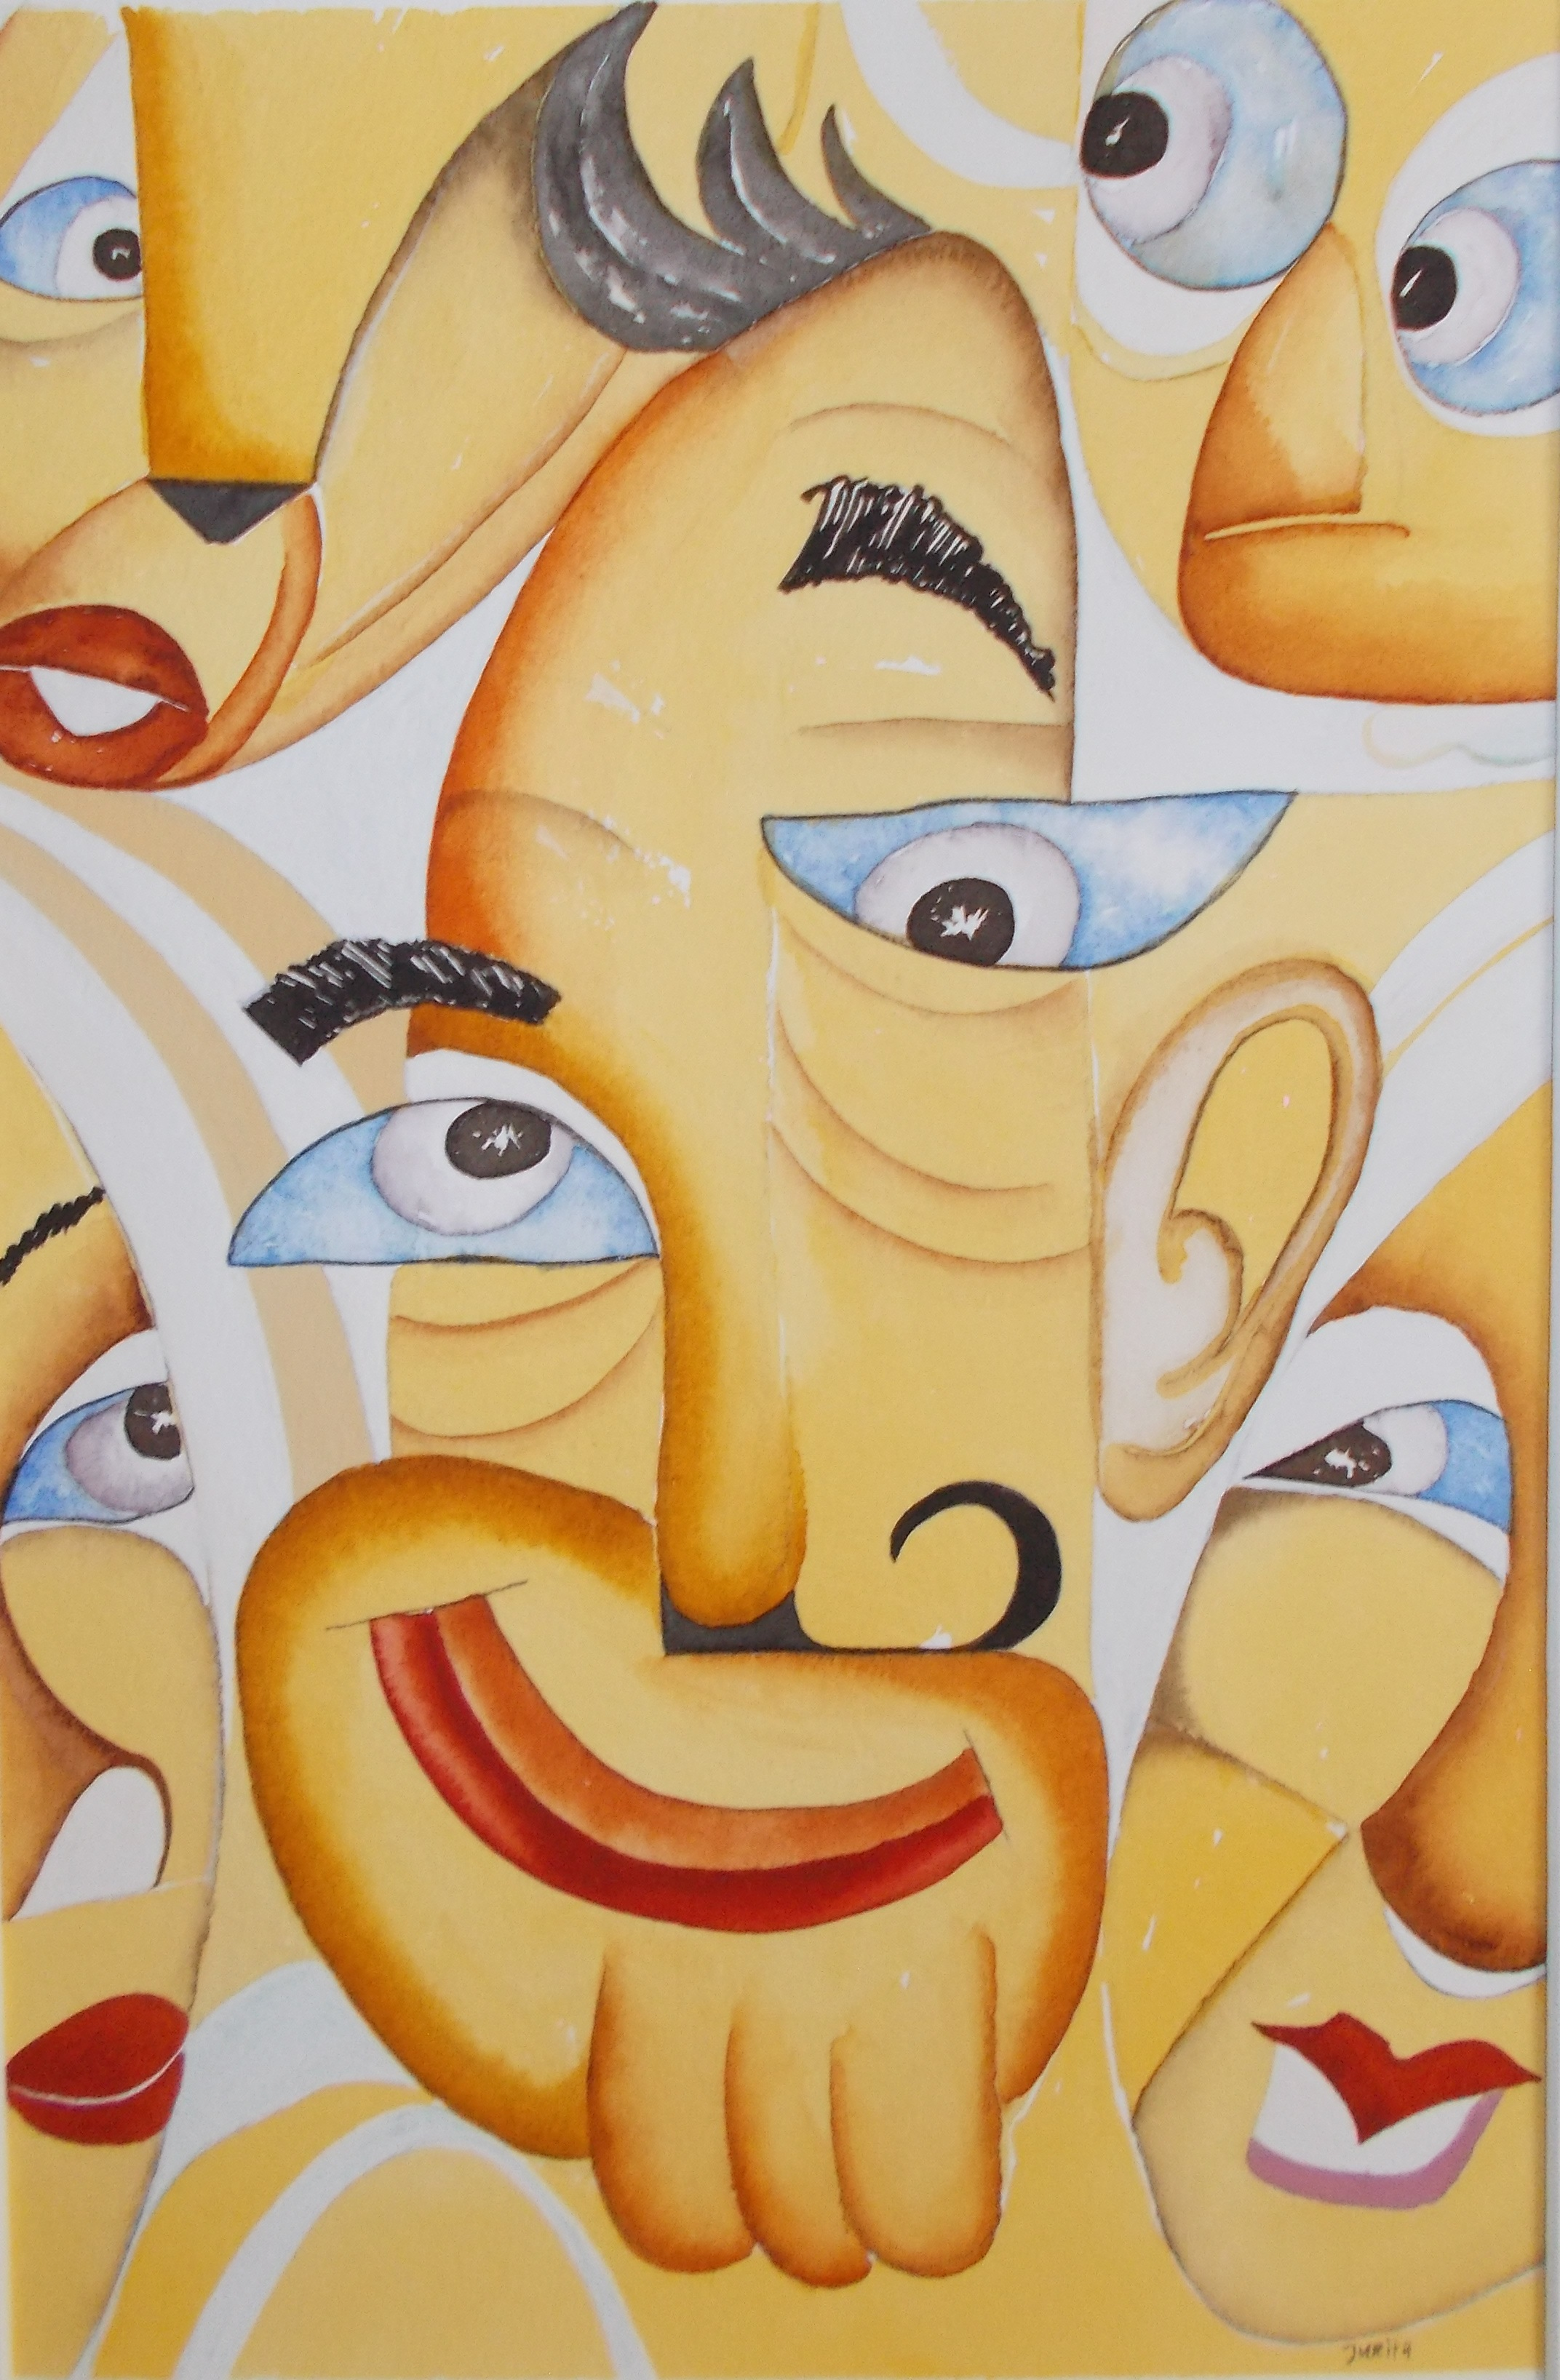 We are from Jazz (smile) by jurita kalite_1